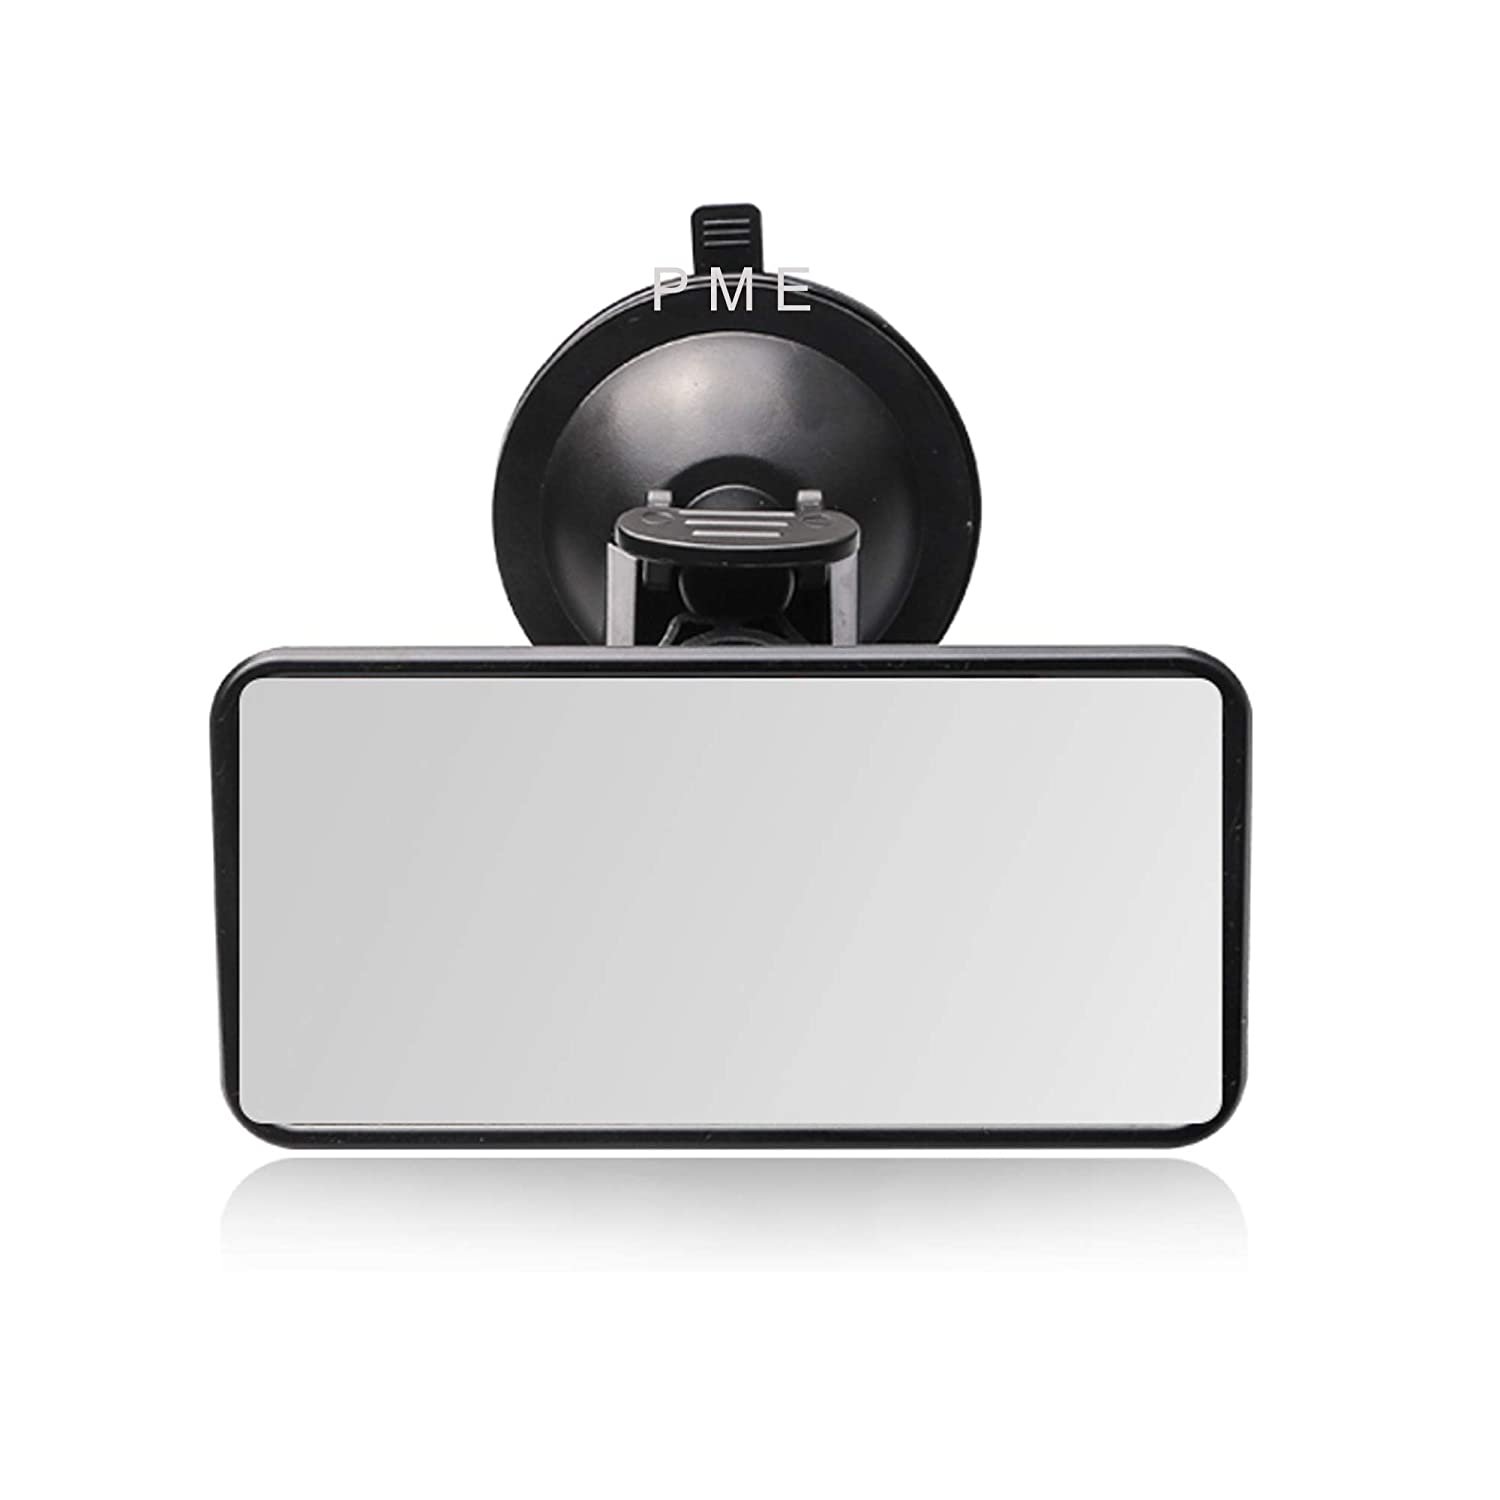 BB Mirror PME Baby Car Mirror Universal Anti-Glare Interior Car Suction Cup Mirror Strong Sucker Rear View Mirror for Baby Infant Child New